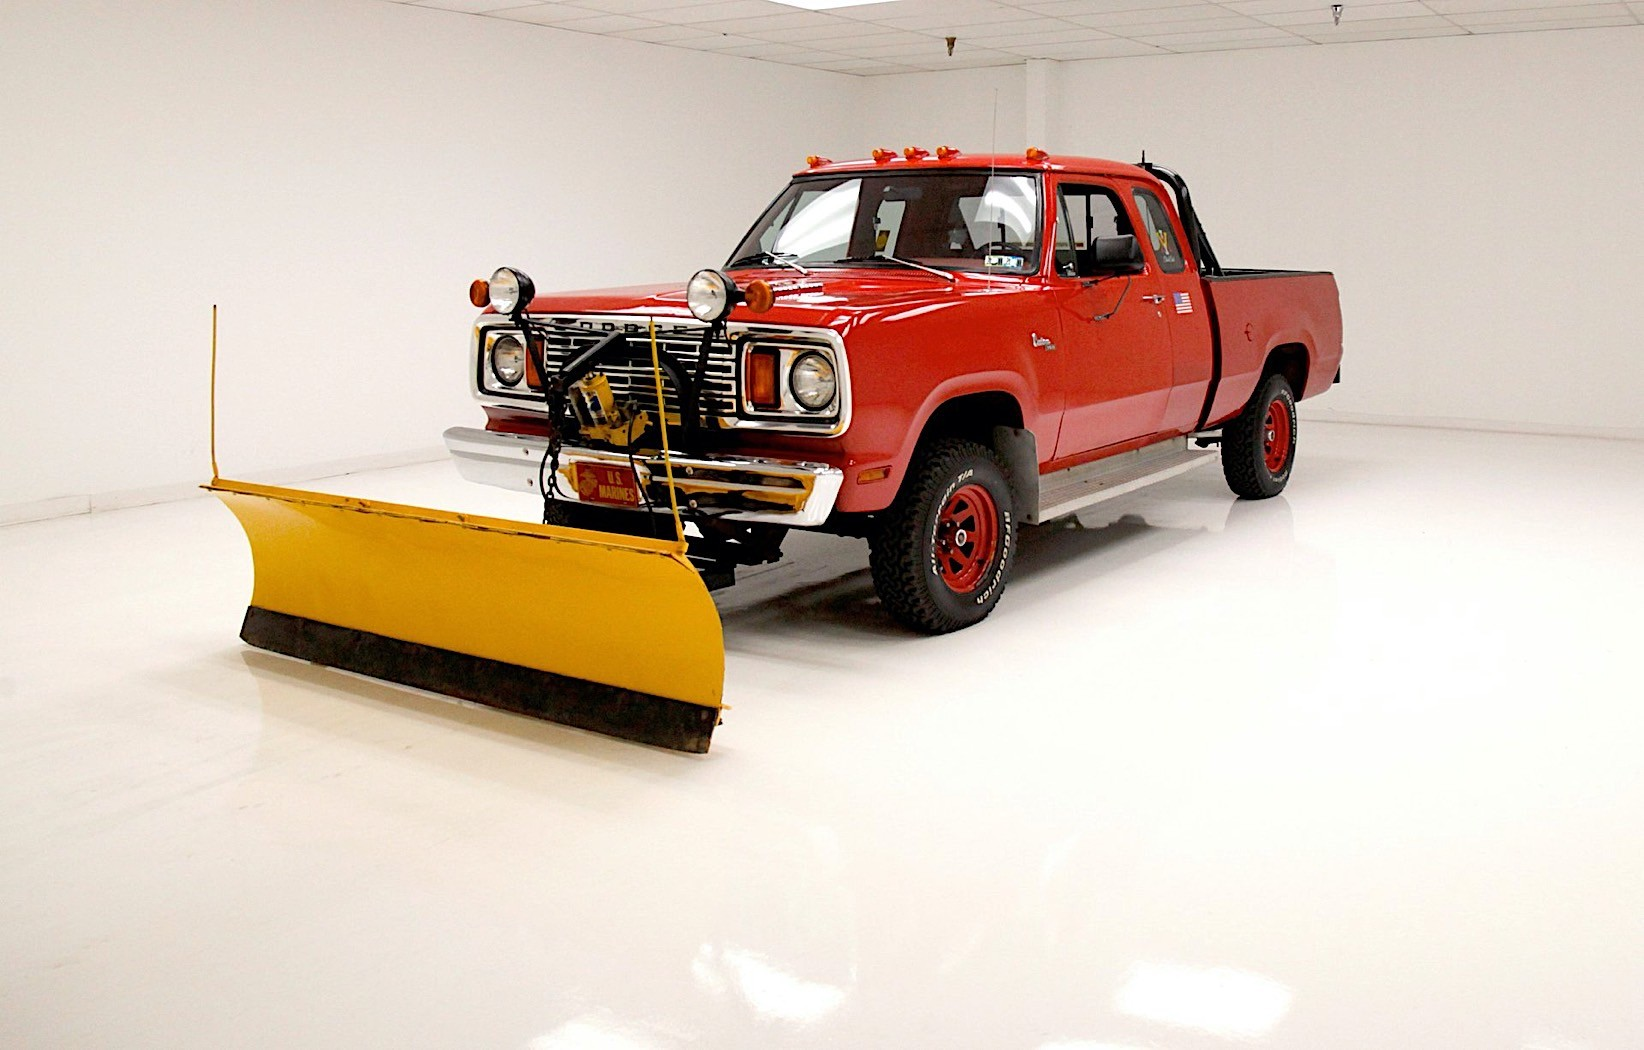 Plow Packing 1978 Dodge Power Wagon Is How Pickups Should Look In The Winter Autoevolution